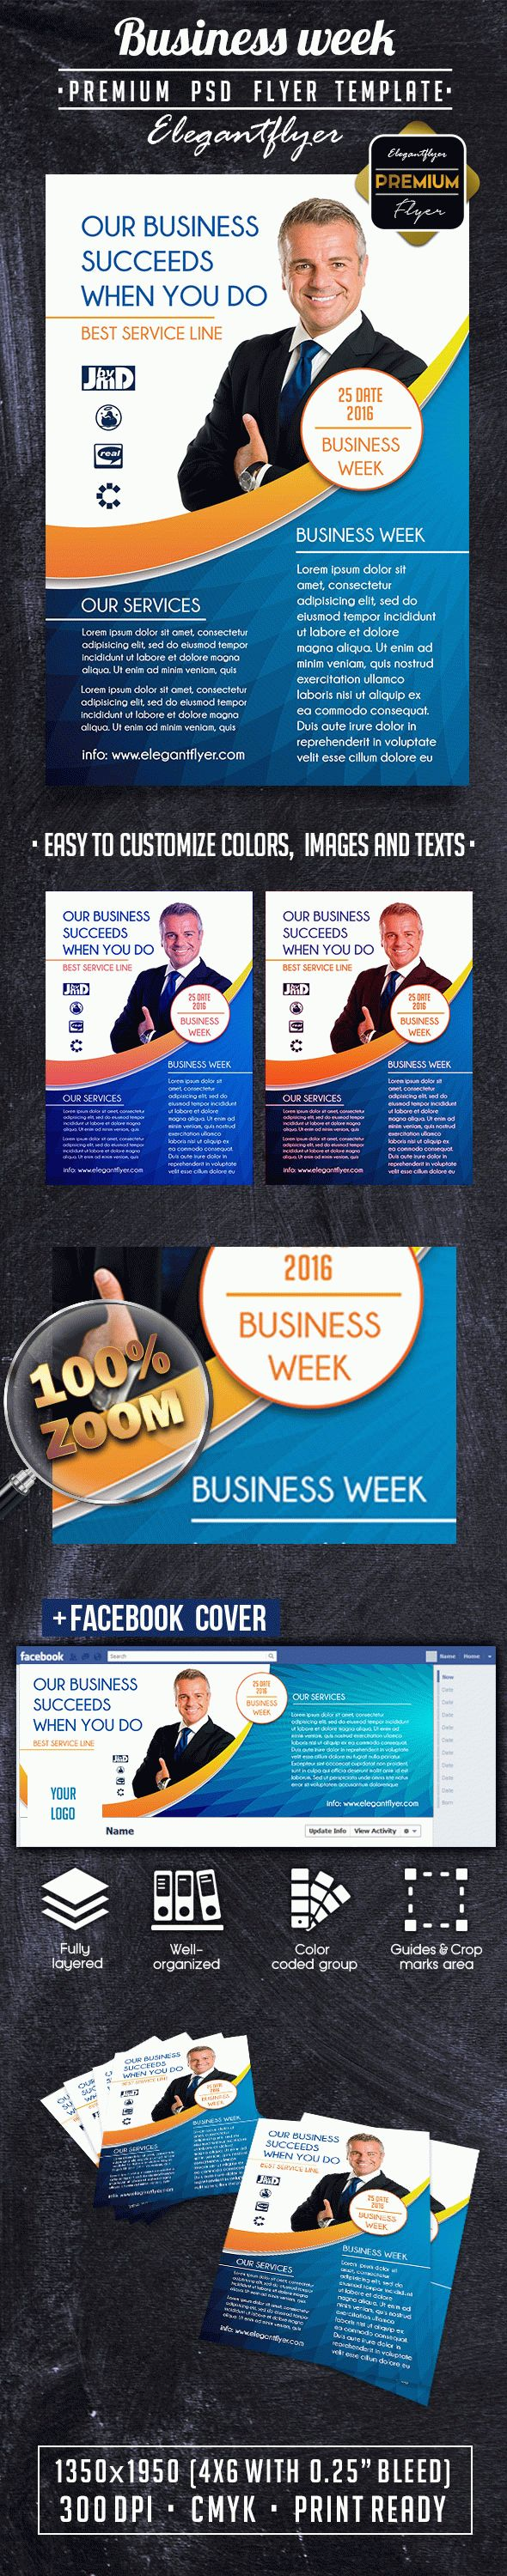 Business week PREMIUM Flyer PSD Template + Facebook Cover